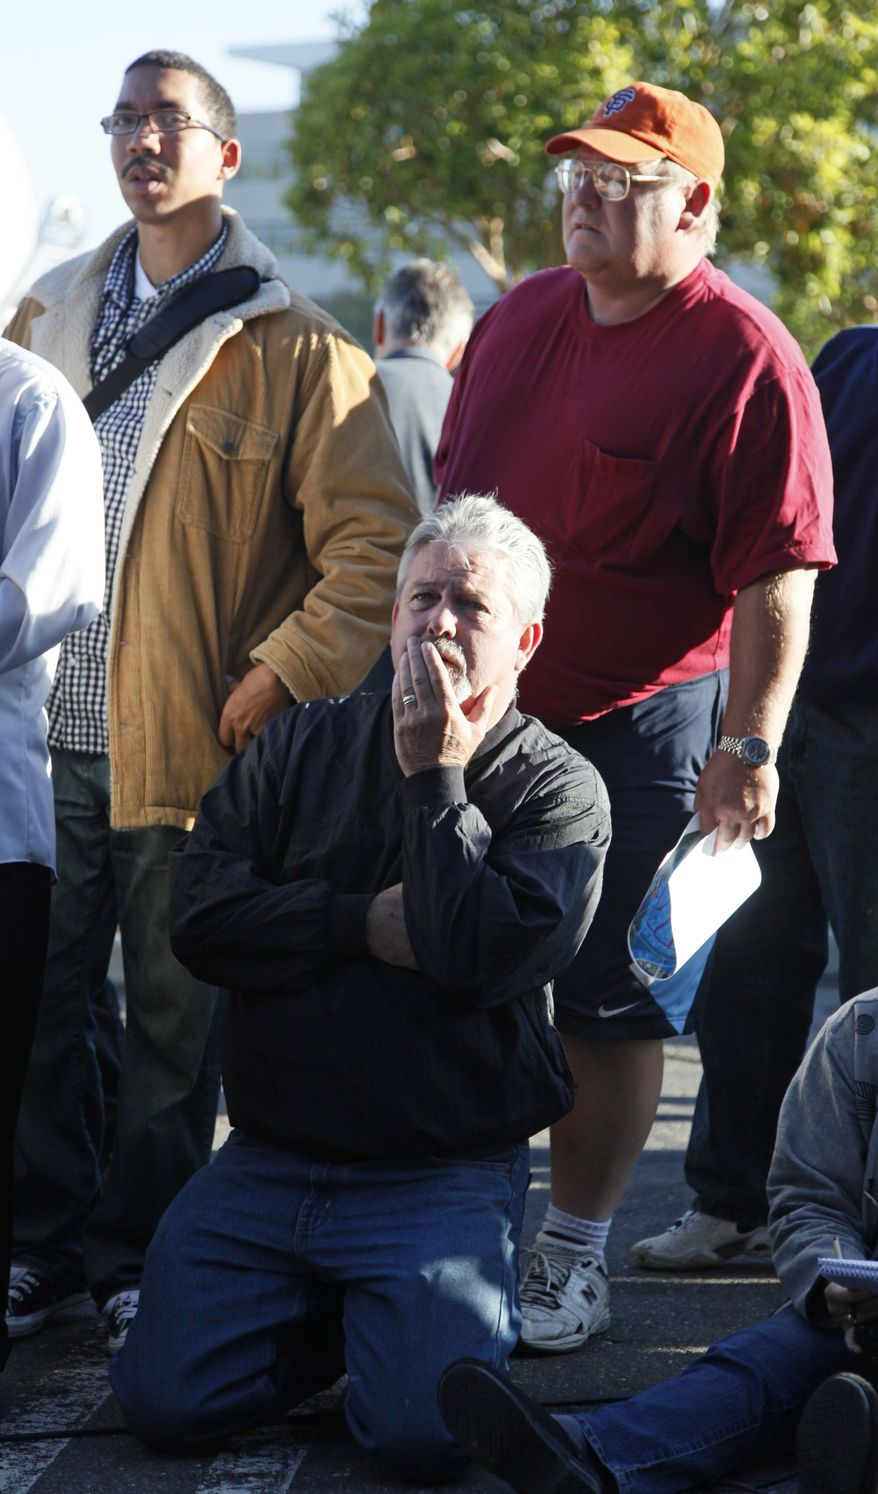 San Bruno, Calif., resident Lester Vaccari, bottom, listens to find out when he can return to his home following a massive gas explosion, during a press conference at a shopping center in San Bruno, Calif., Friday, Sept. 10, 2010. (AP Photo/Eric Risberg)